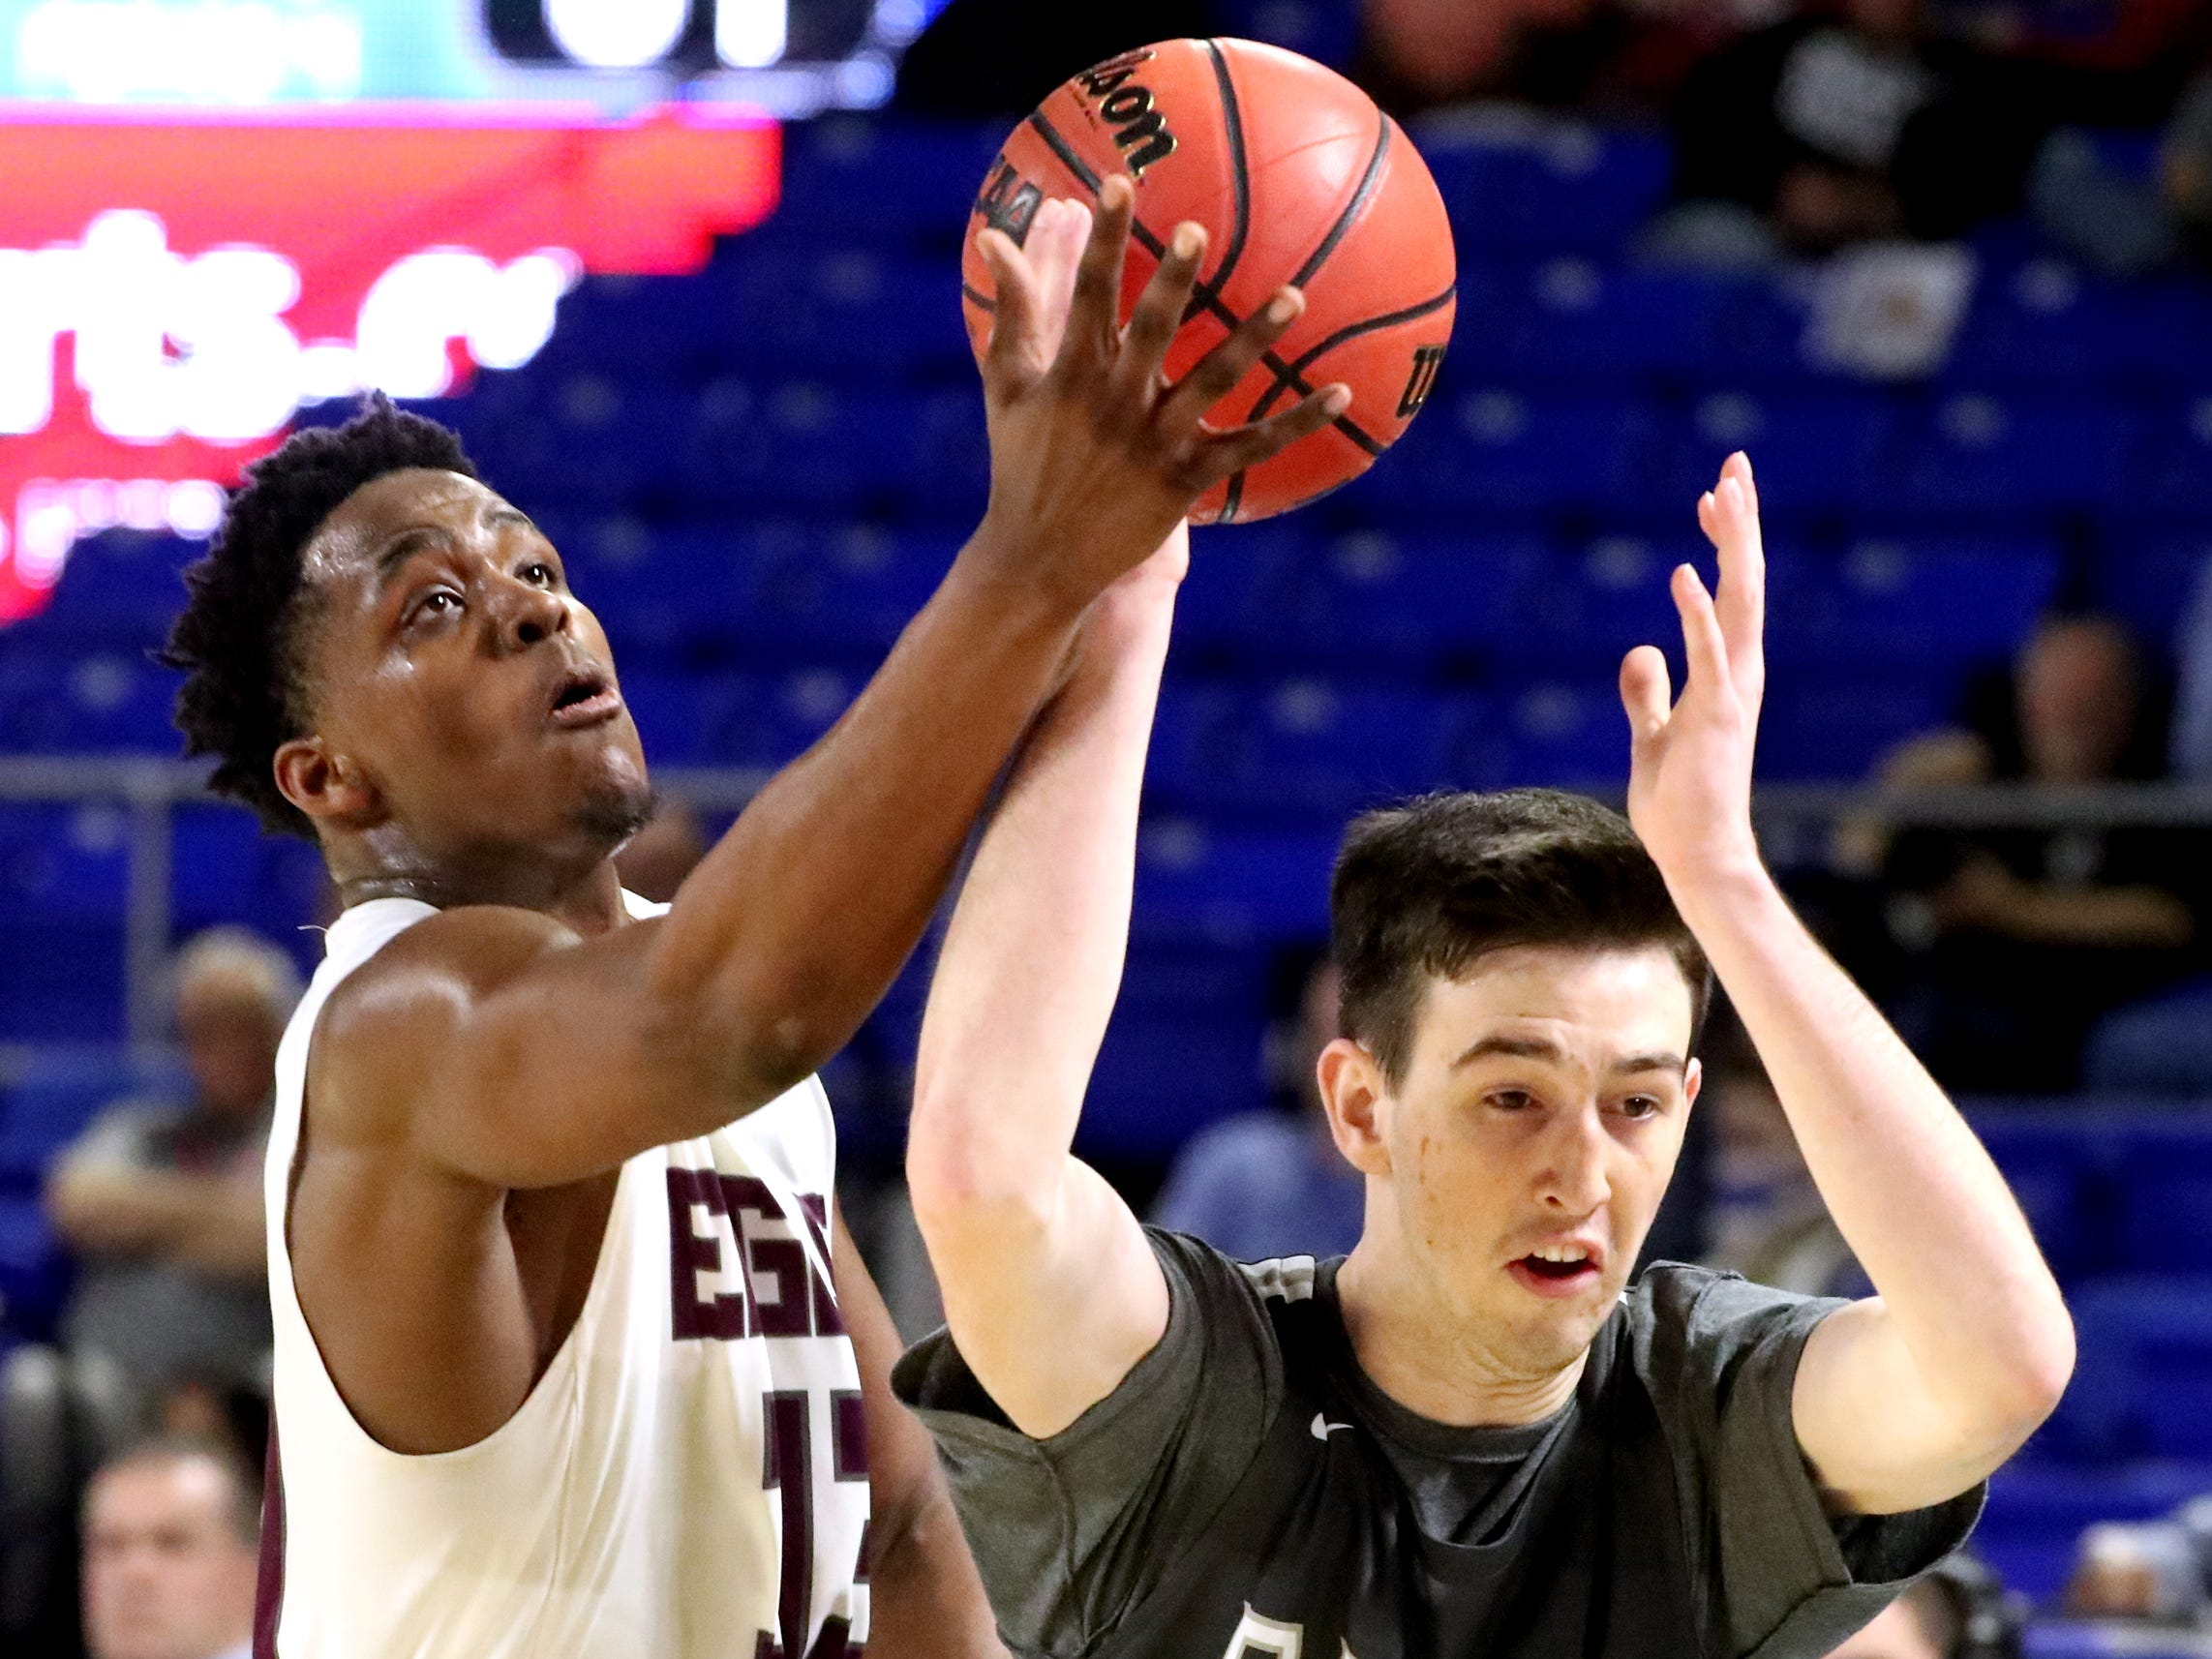 Eagleville's Demarious Stoudemire (33) tries to steal the ball away from Columbia Academy's Eli Hyle (21) during the semifinal round of the TSSAA Class A Boys State Tournament, on Thursday, March 15, 2019, at Murphy Center in Murfreesboro, Tenn.